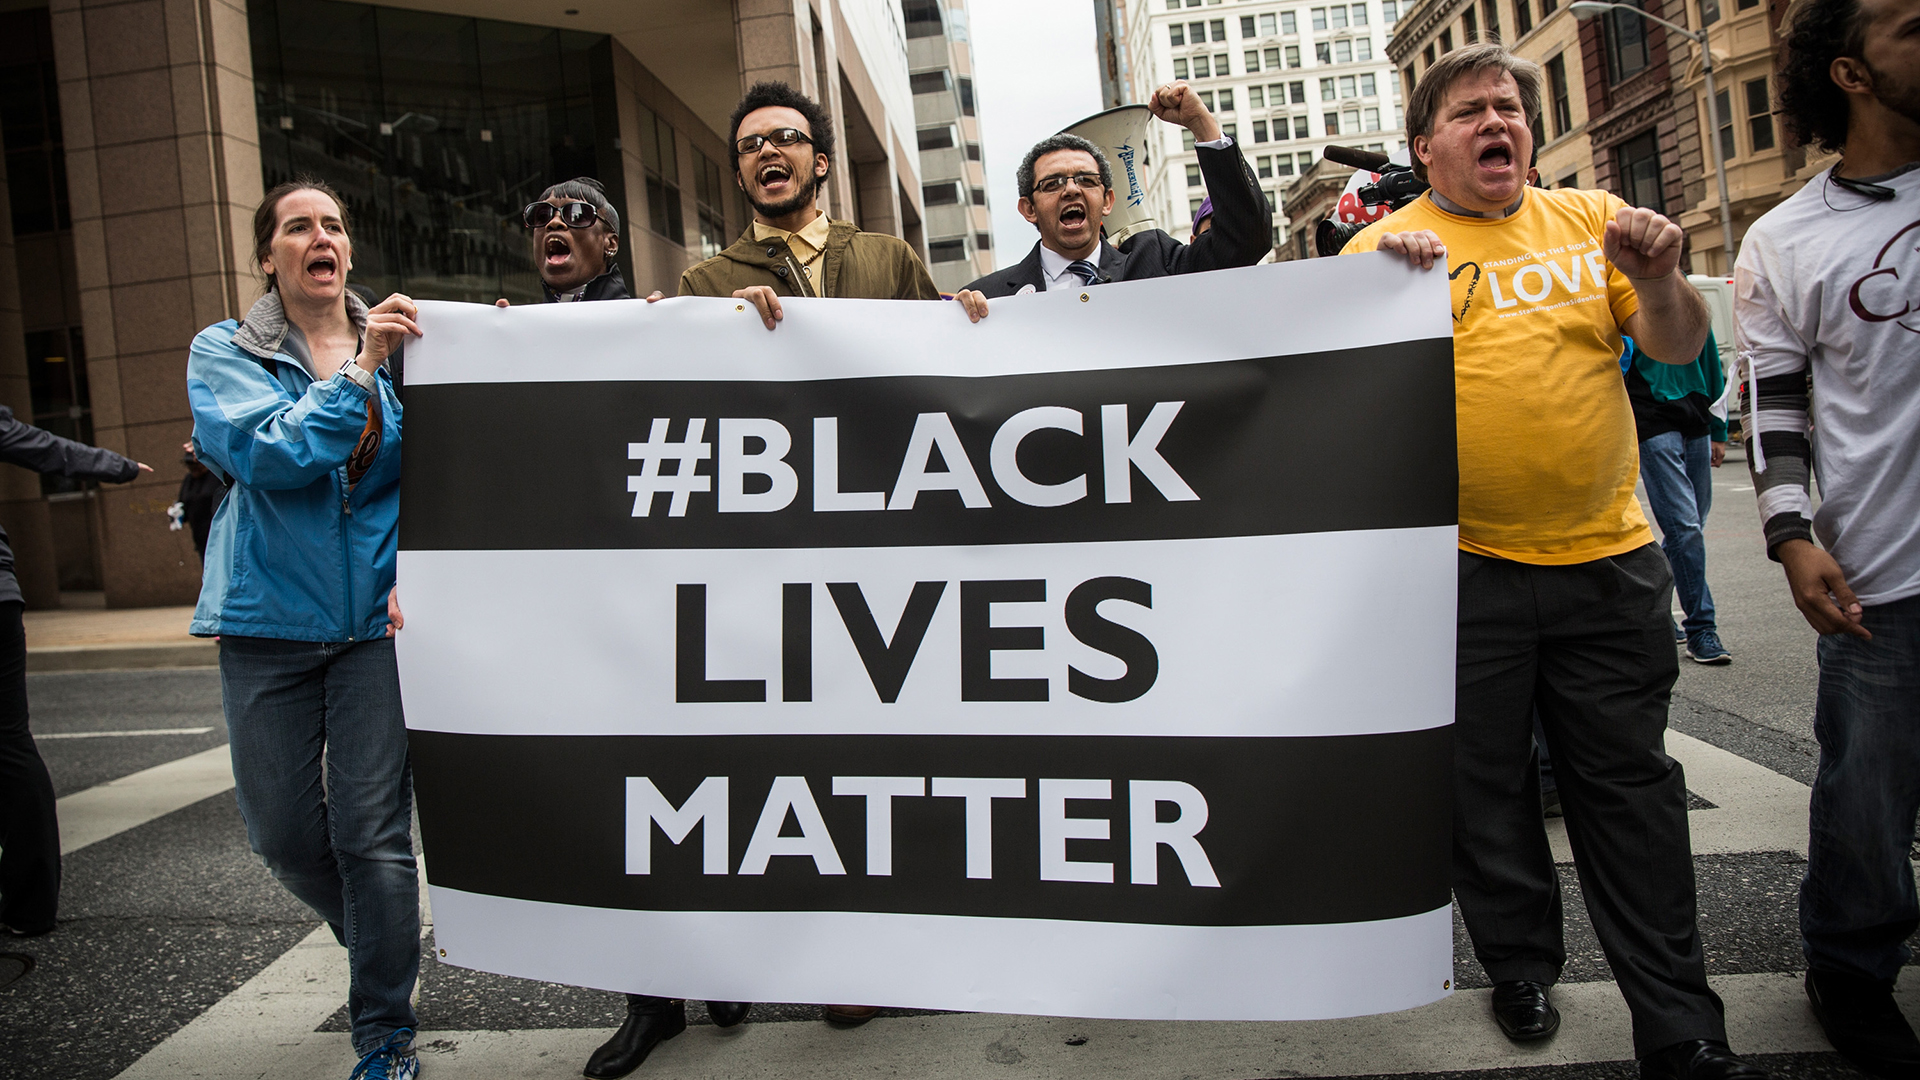 Black Lives Matter Won't Endorse a 2016 Candidate: Report